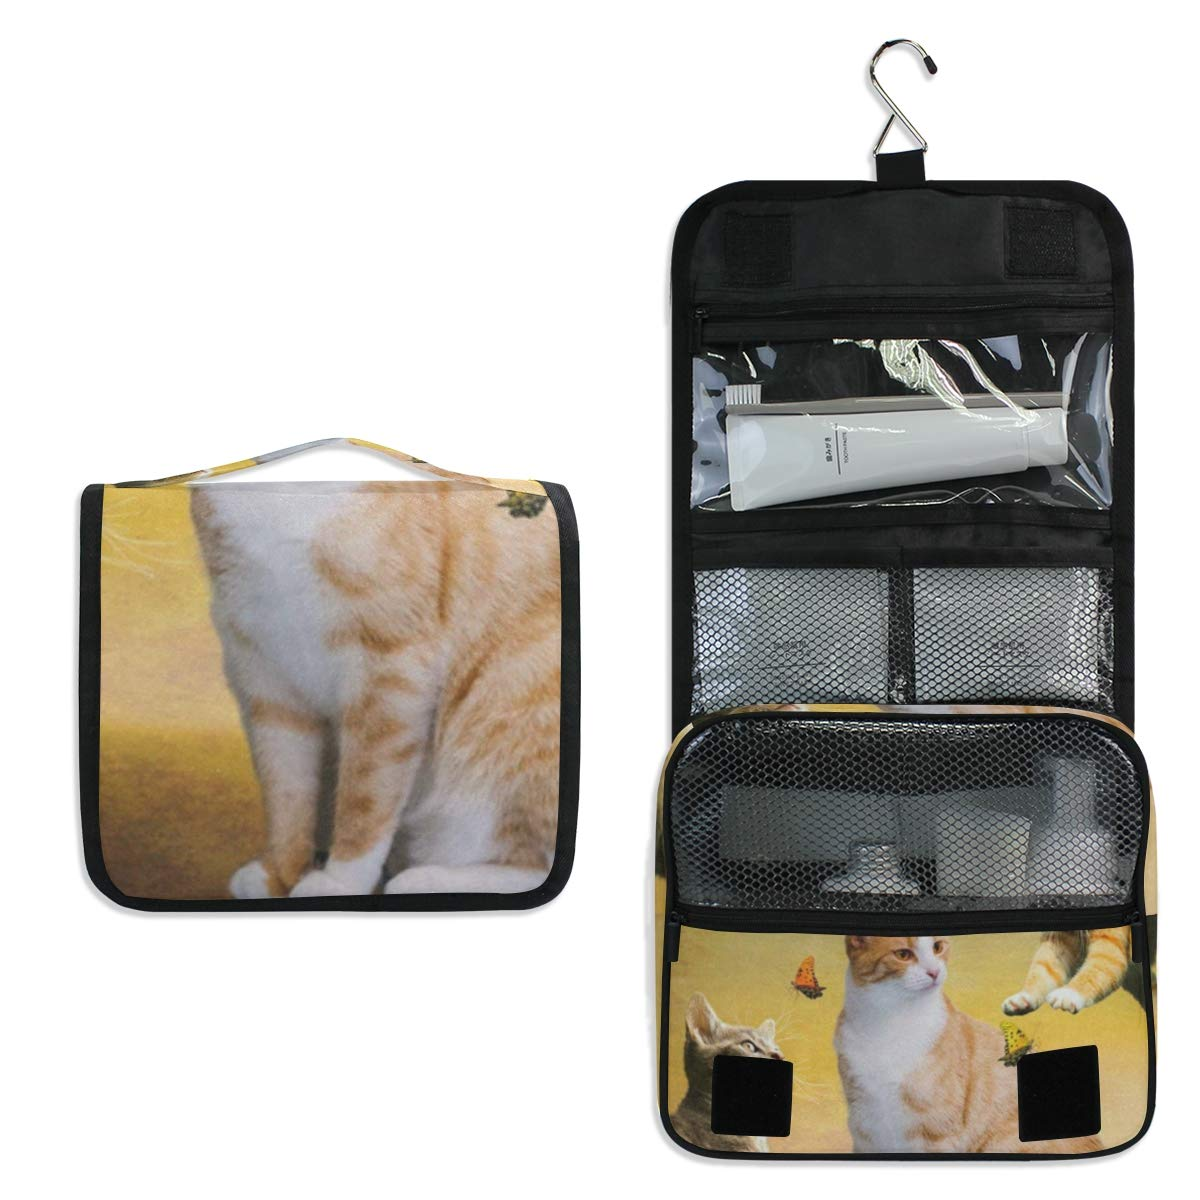 Cat Dog Hanging Travel Toiletry Bag for Women Men | Hygiene Bag | Bathroom and Shower Organizer for Toiletries, Cosmetics, Makeup, Brushes